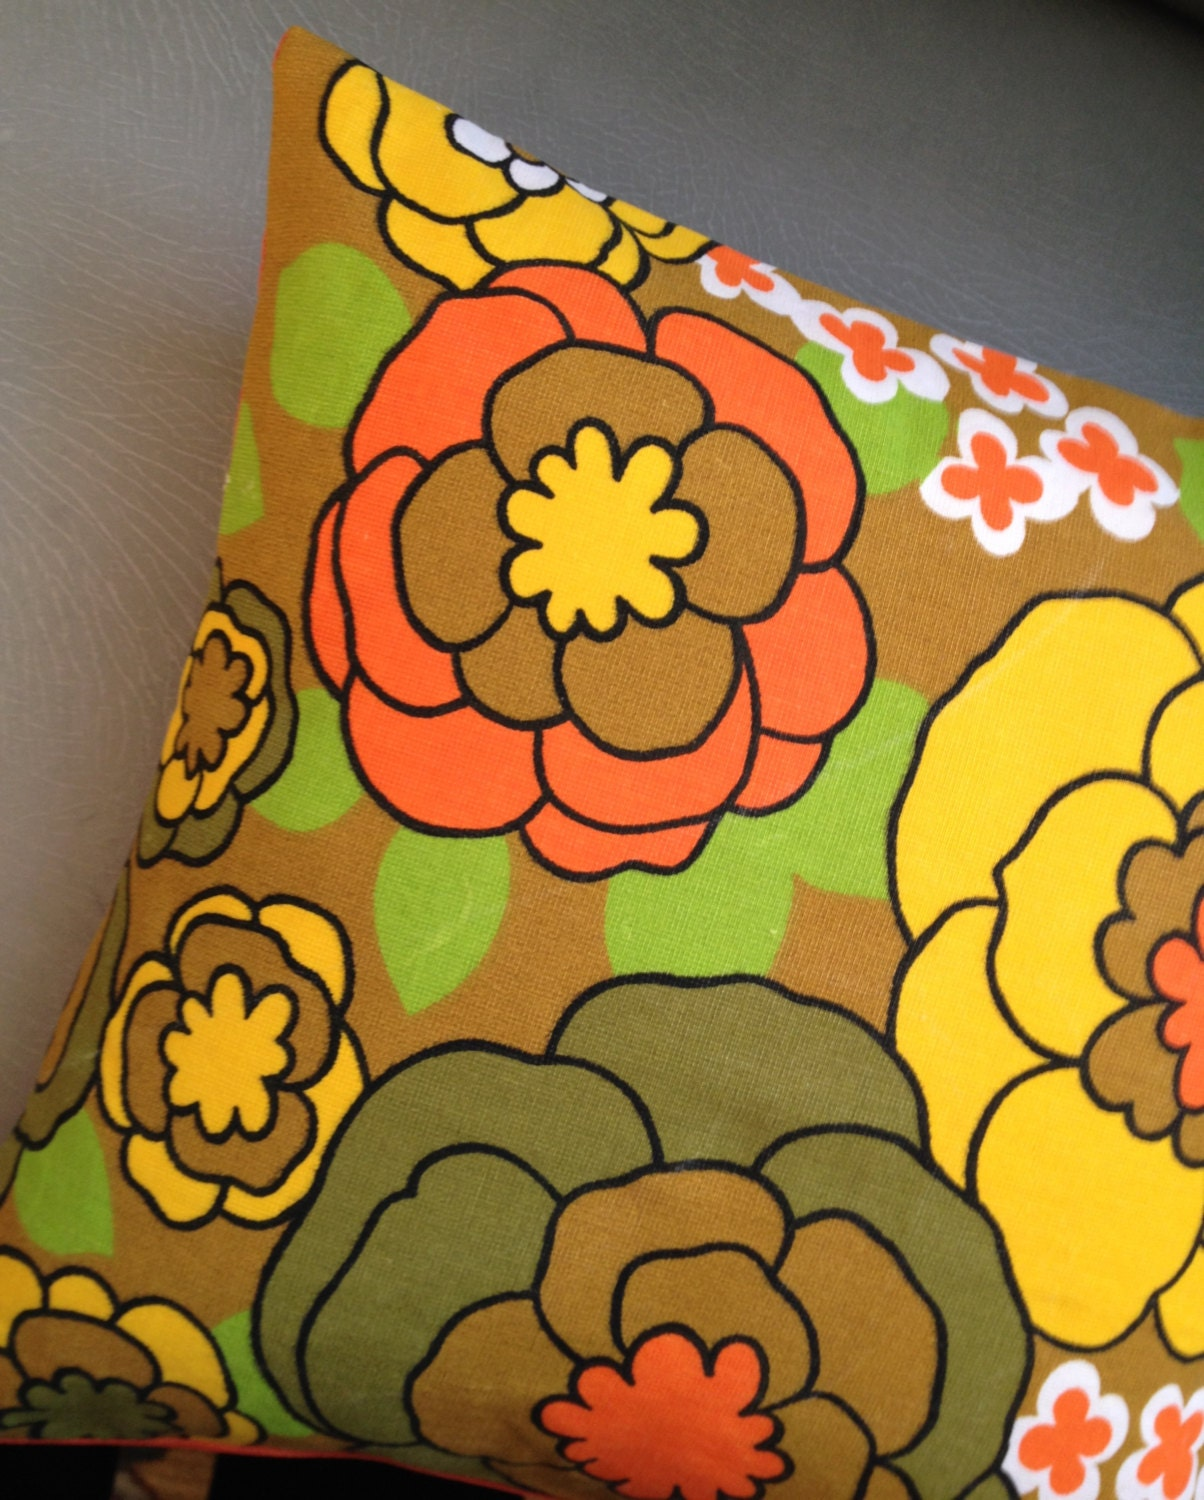 Feelin Groovy Flower Power 60s Barkcloth Fabric Throw Pillow// Decorative Pillow// Down Insert